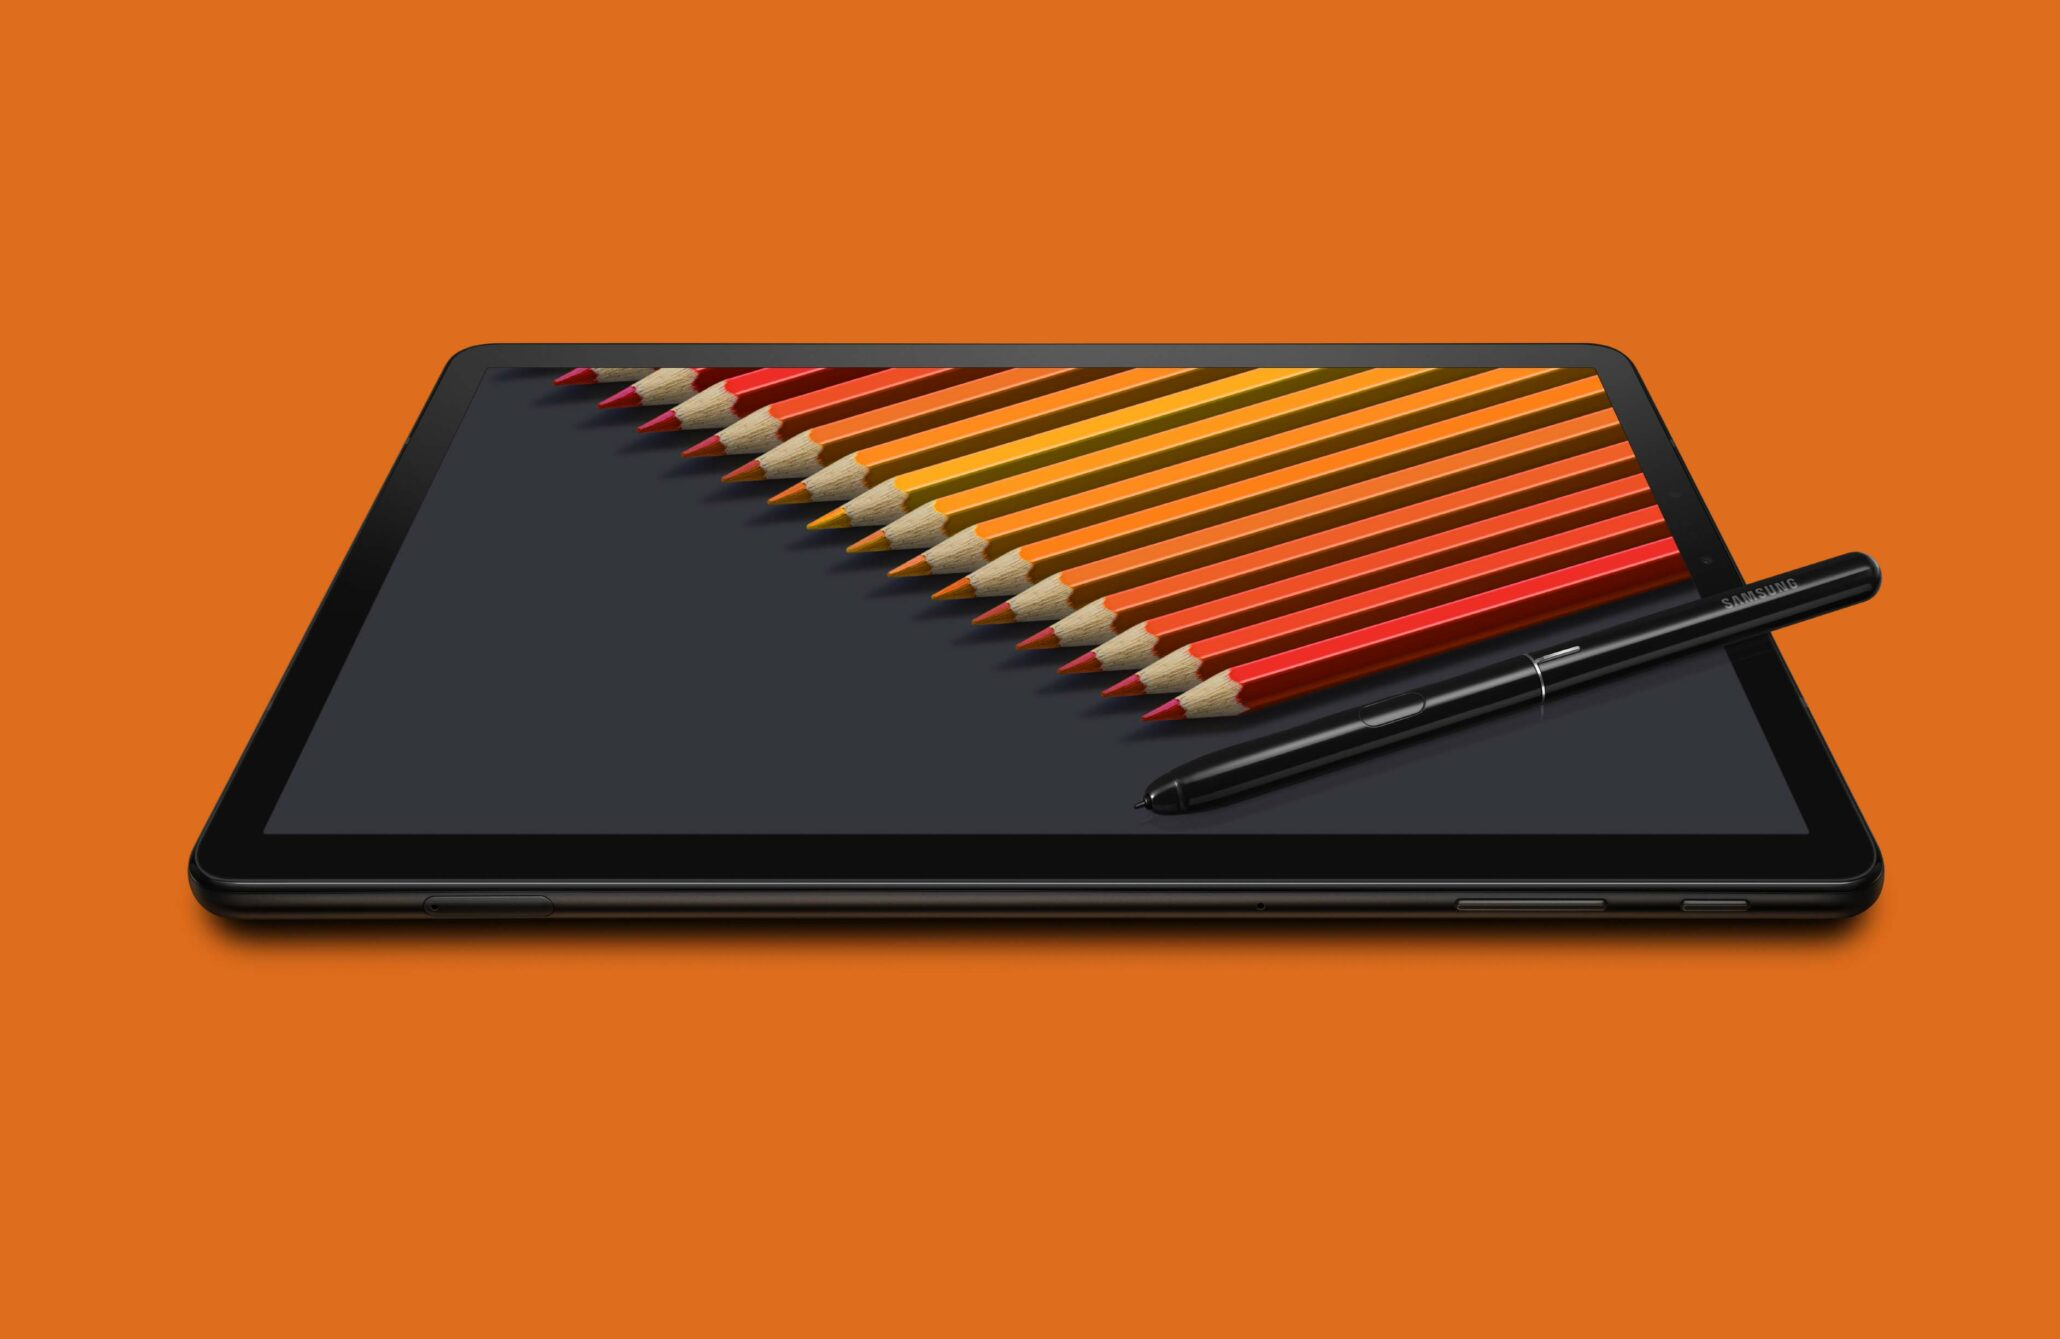 Samsung Galaxy Tab S4 Is Official - 10 5-Inch AMOLED Screen